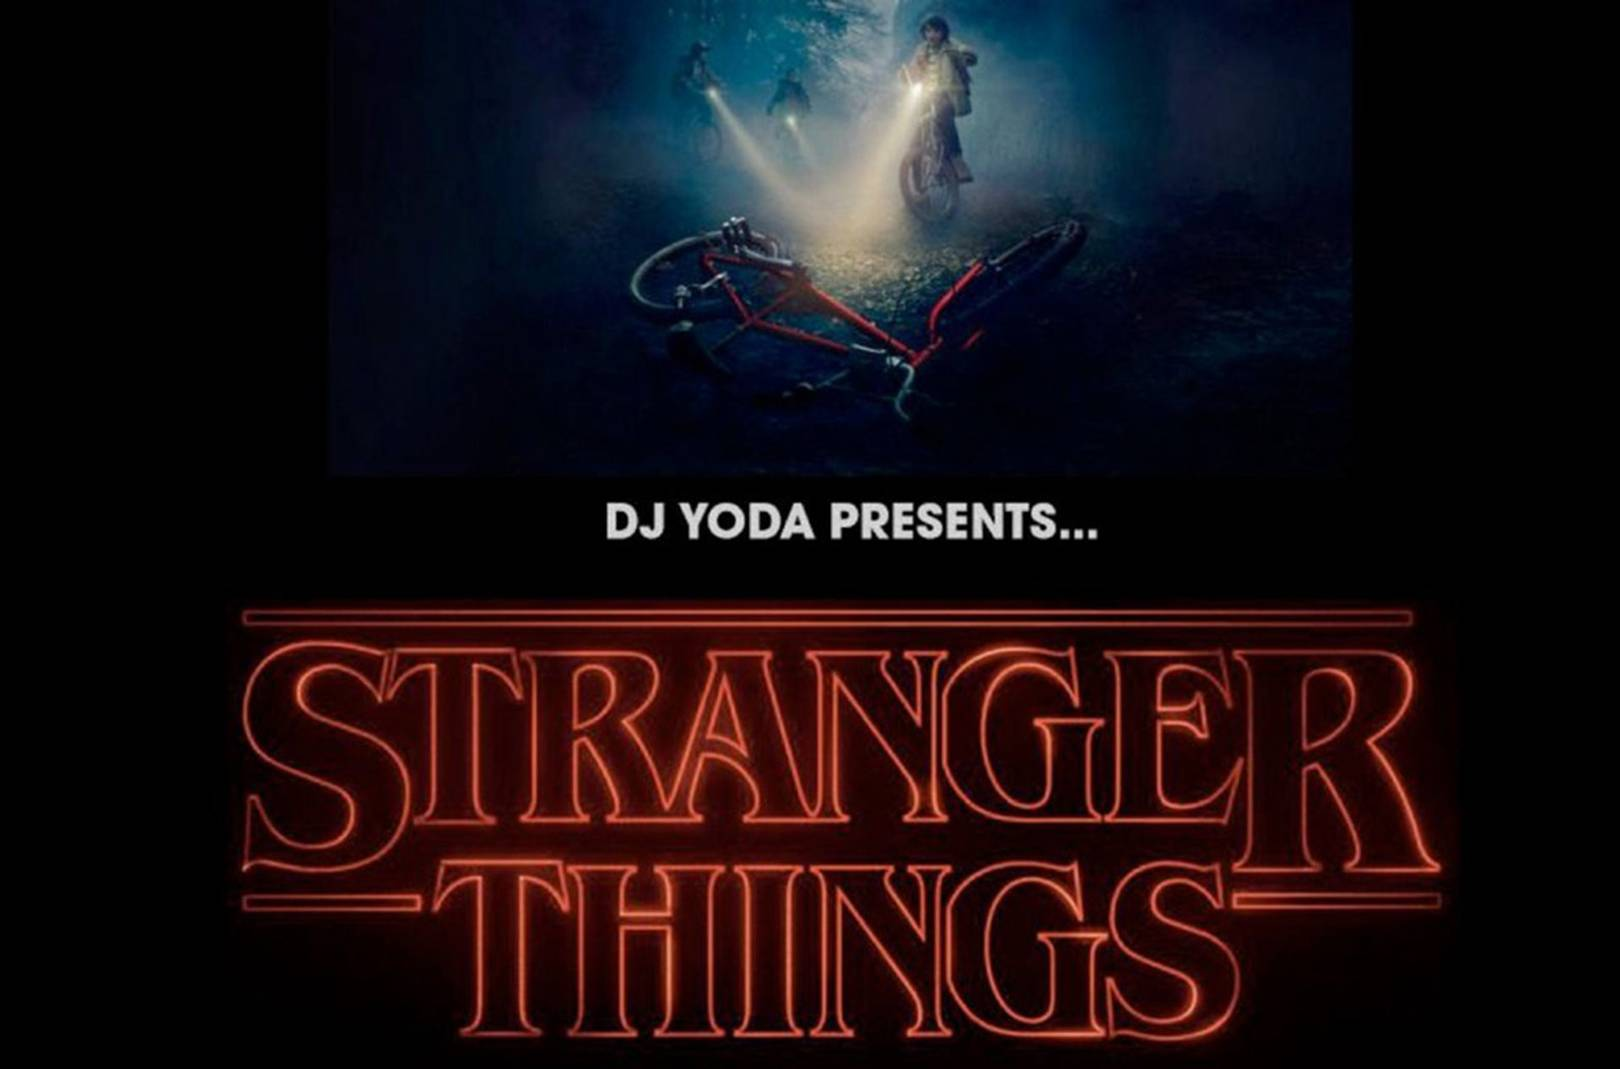 Stranger Things soundtrack: this DJ Yoda mix will make your commute ...